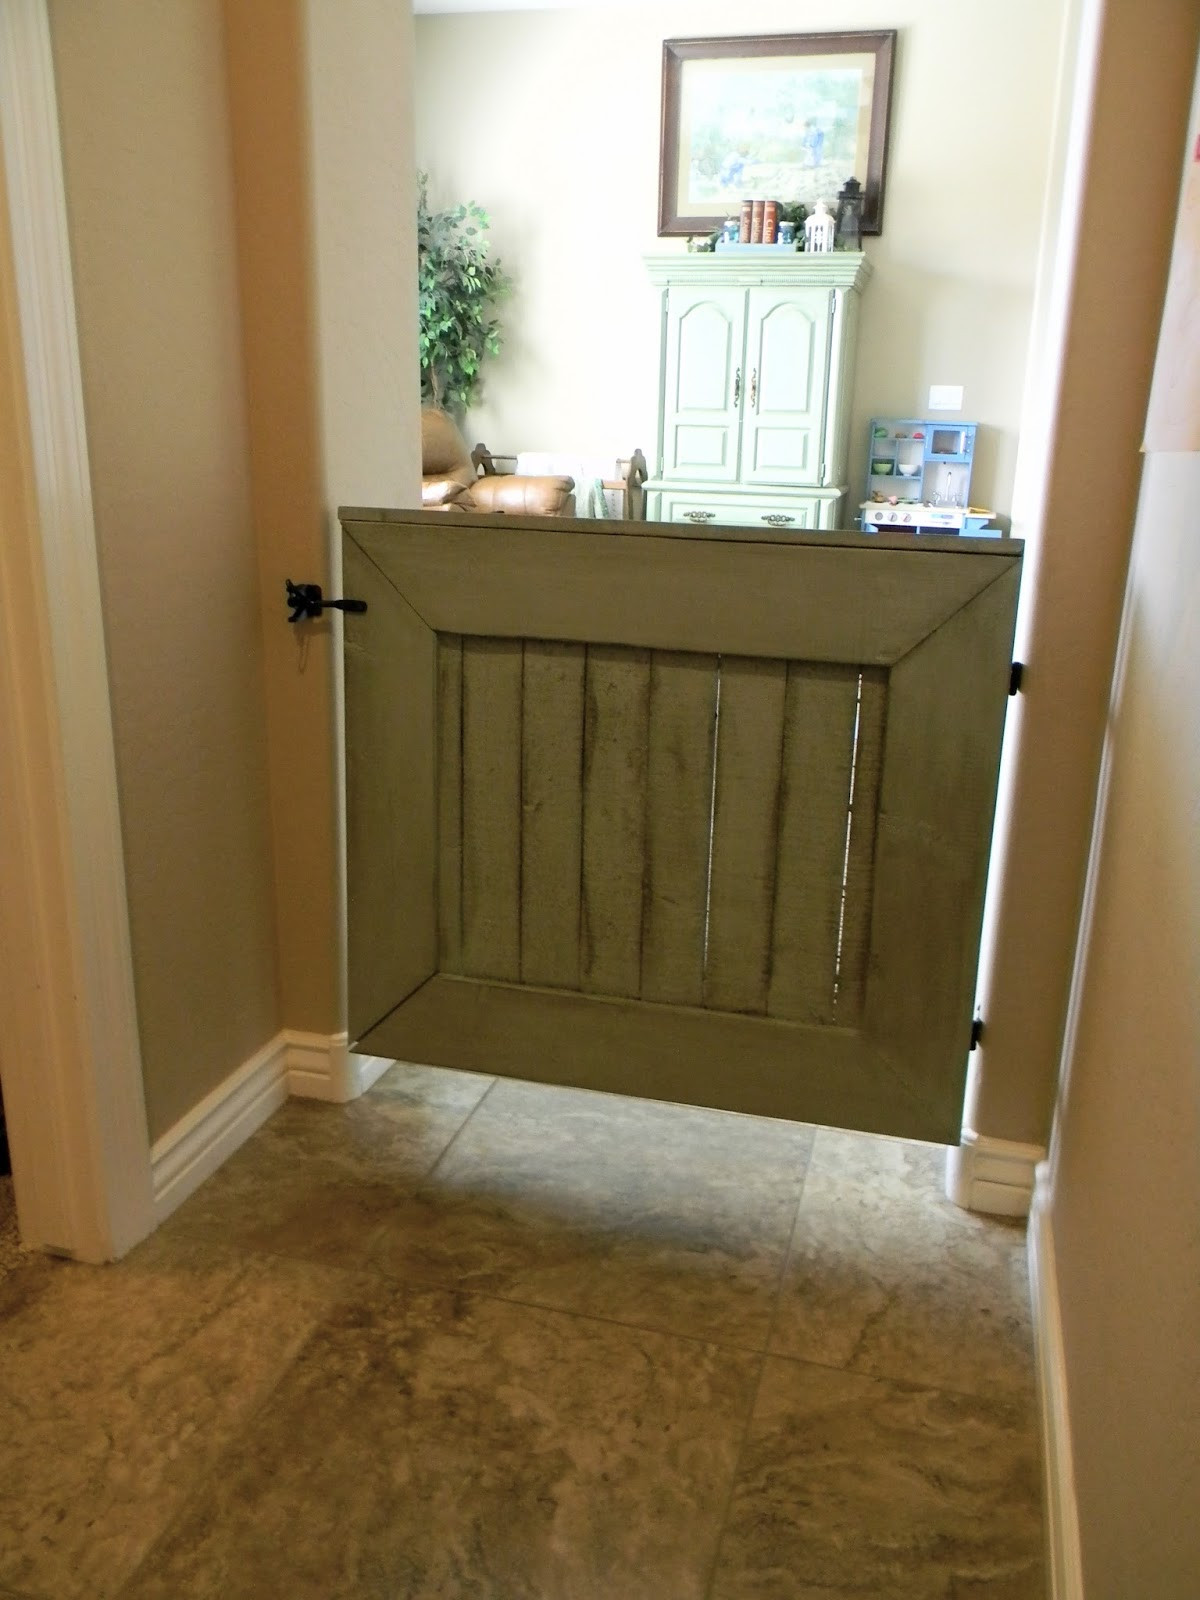 Best ideas about Baby Gate DIY . Save or Pin Little Bit of Paint DIY Baby Gate Now.